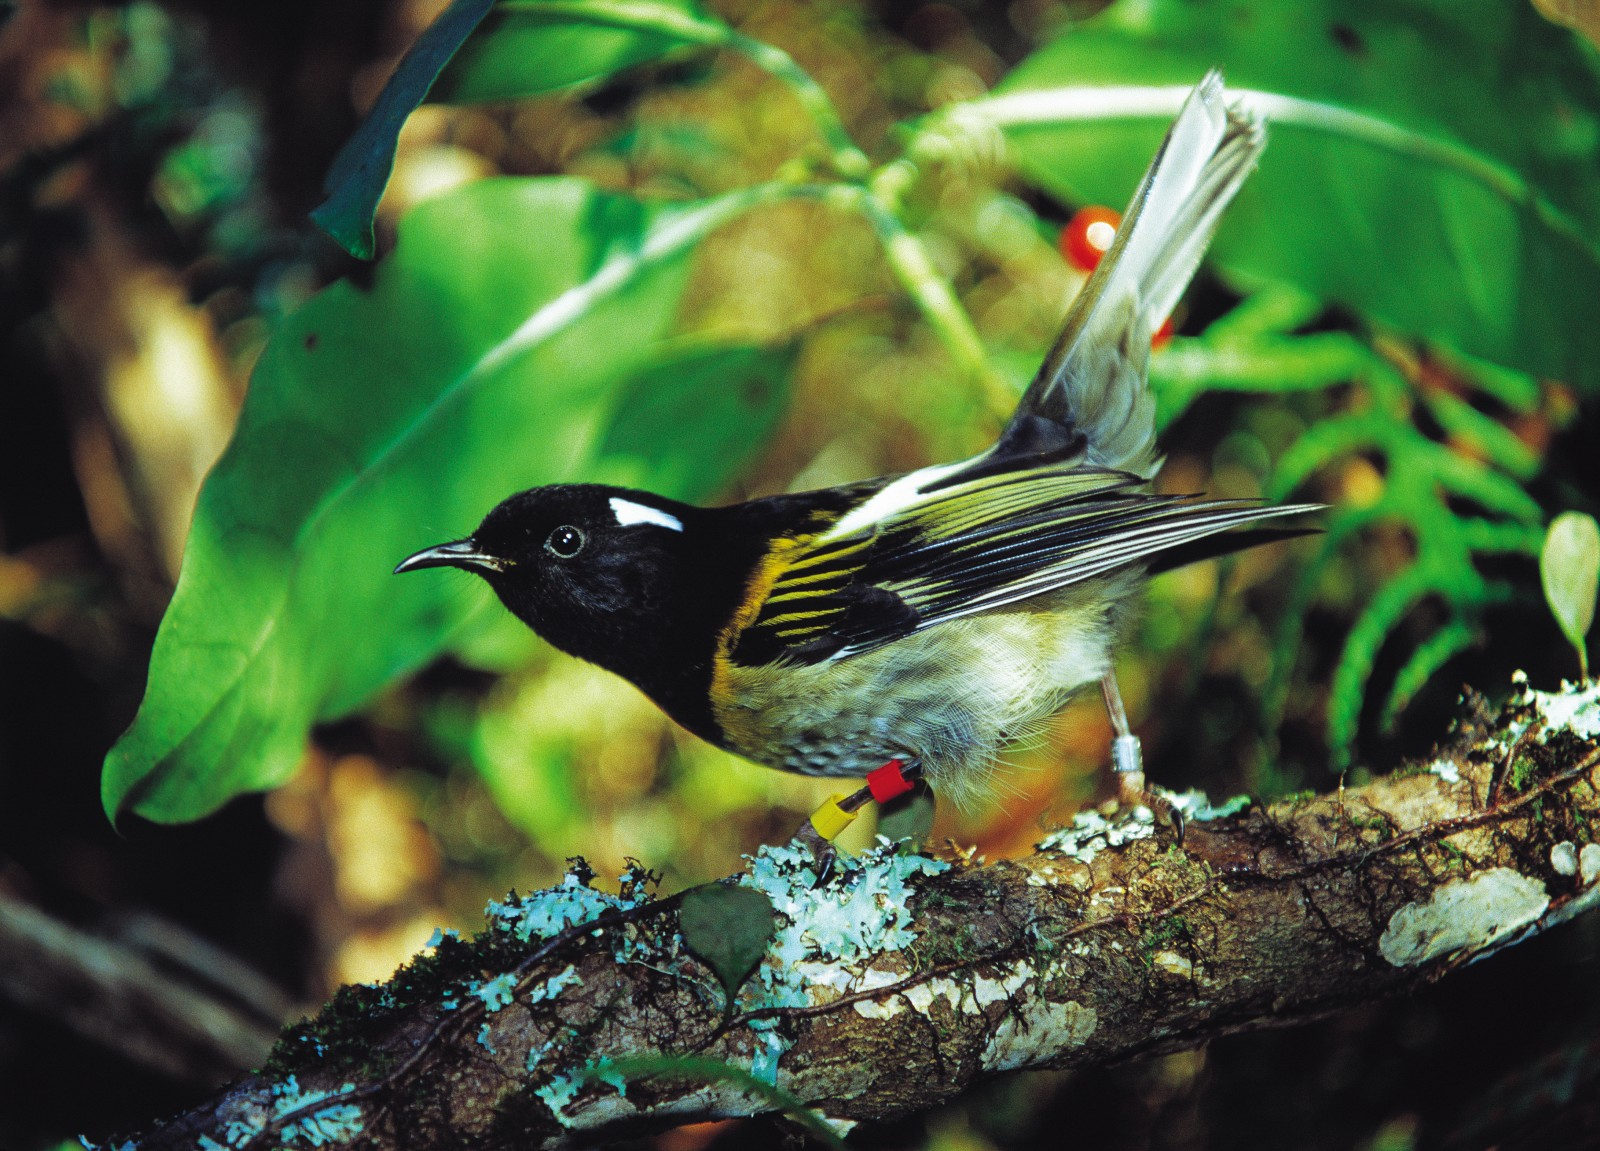 While both sexes adopt the same alert, tail-held-high stance, only the male stitchbird possesses the bright splashes of yellow on breast and wing (below) that make such a striking contrast with his black head plumage.